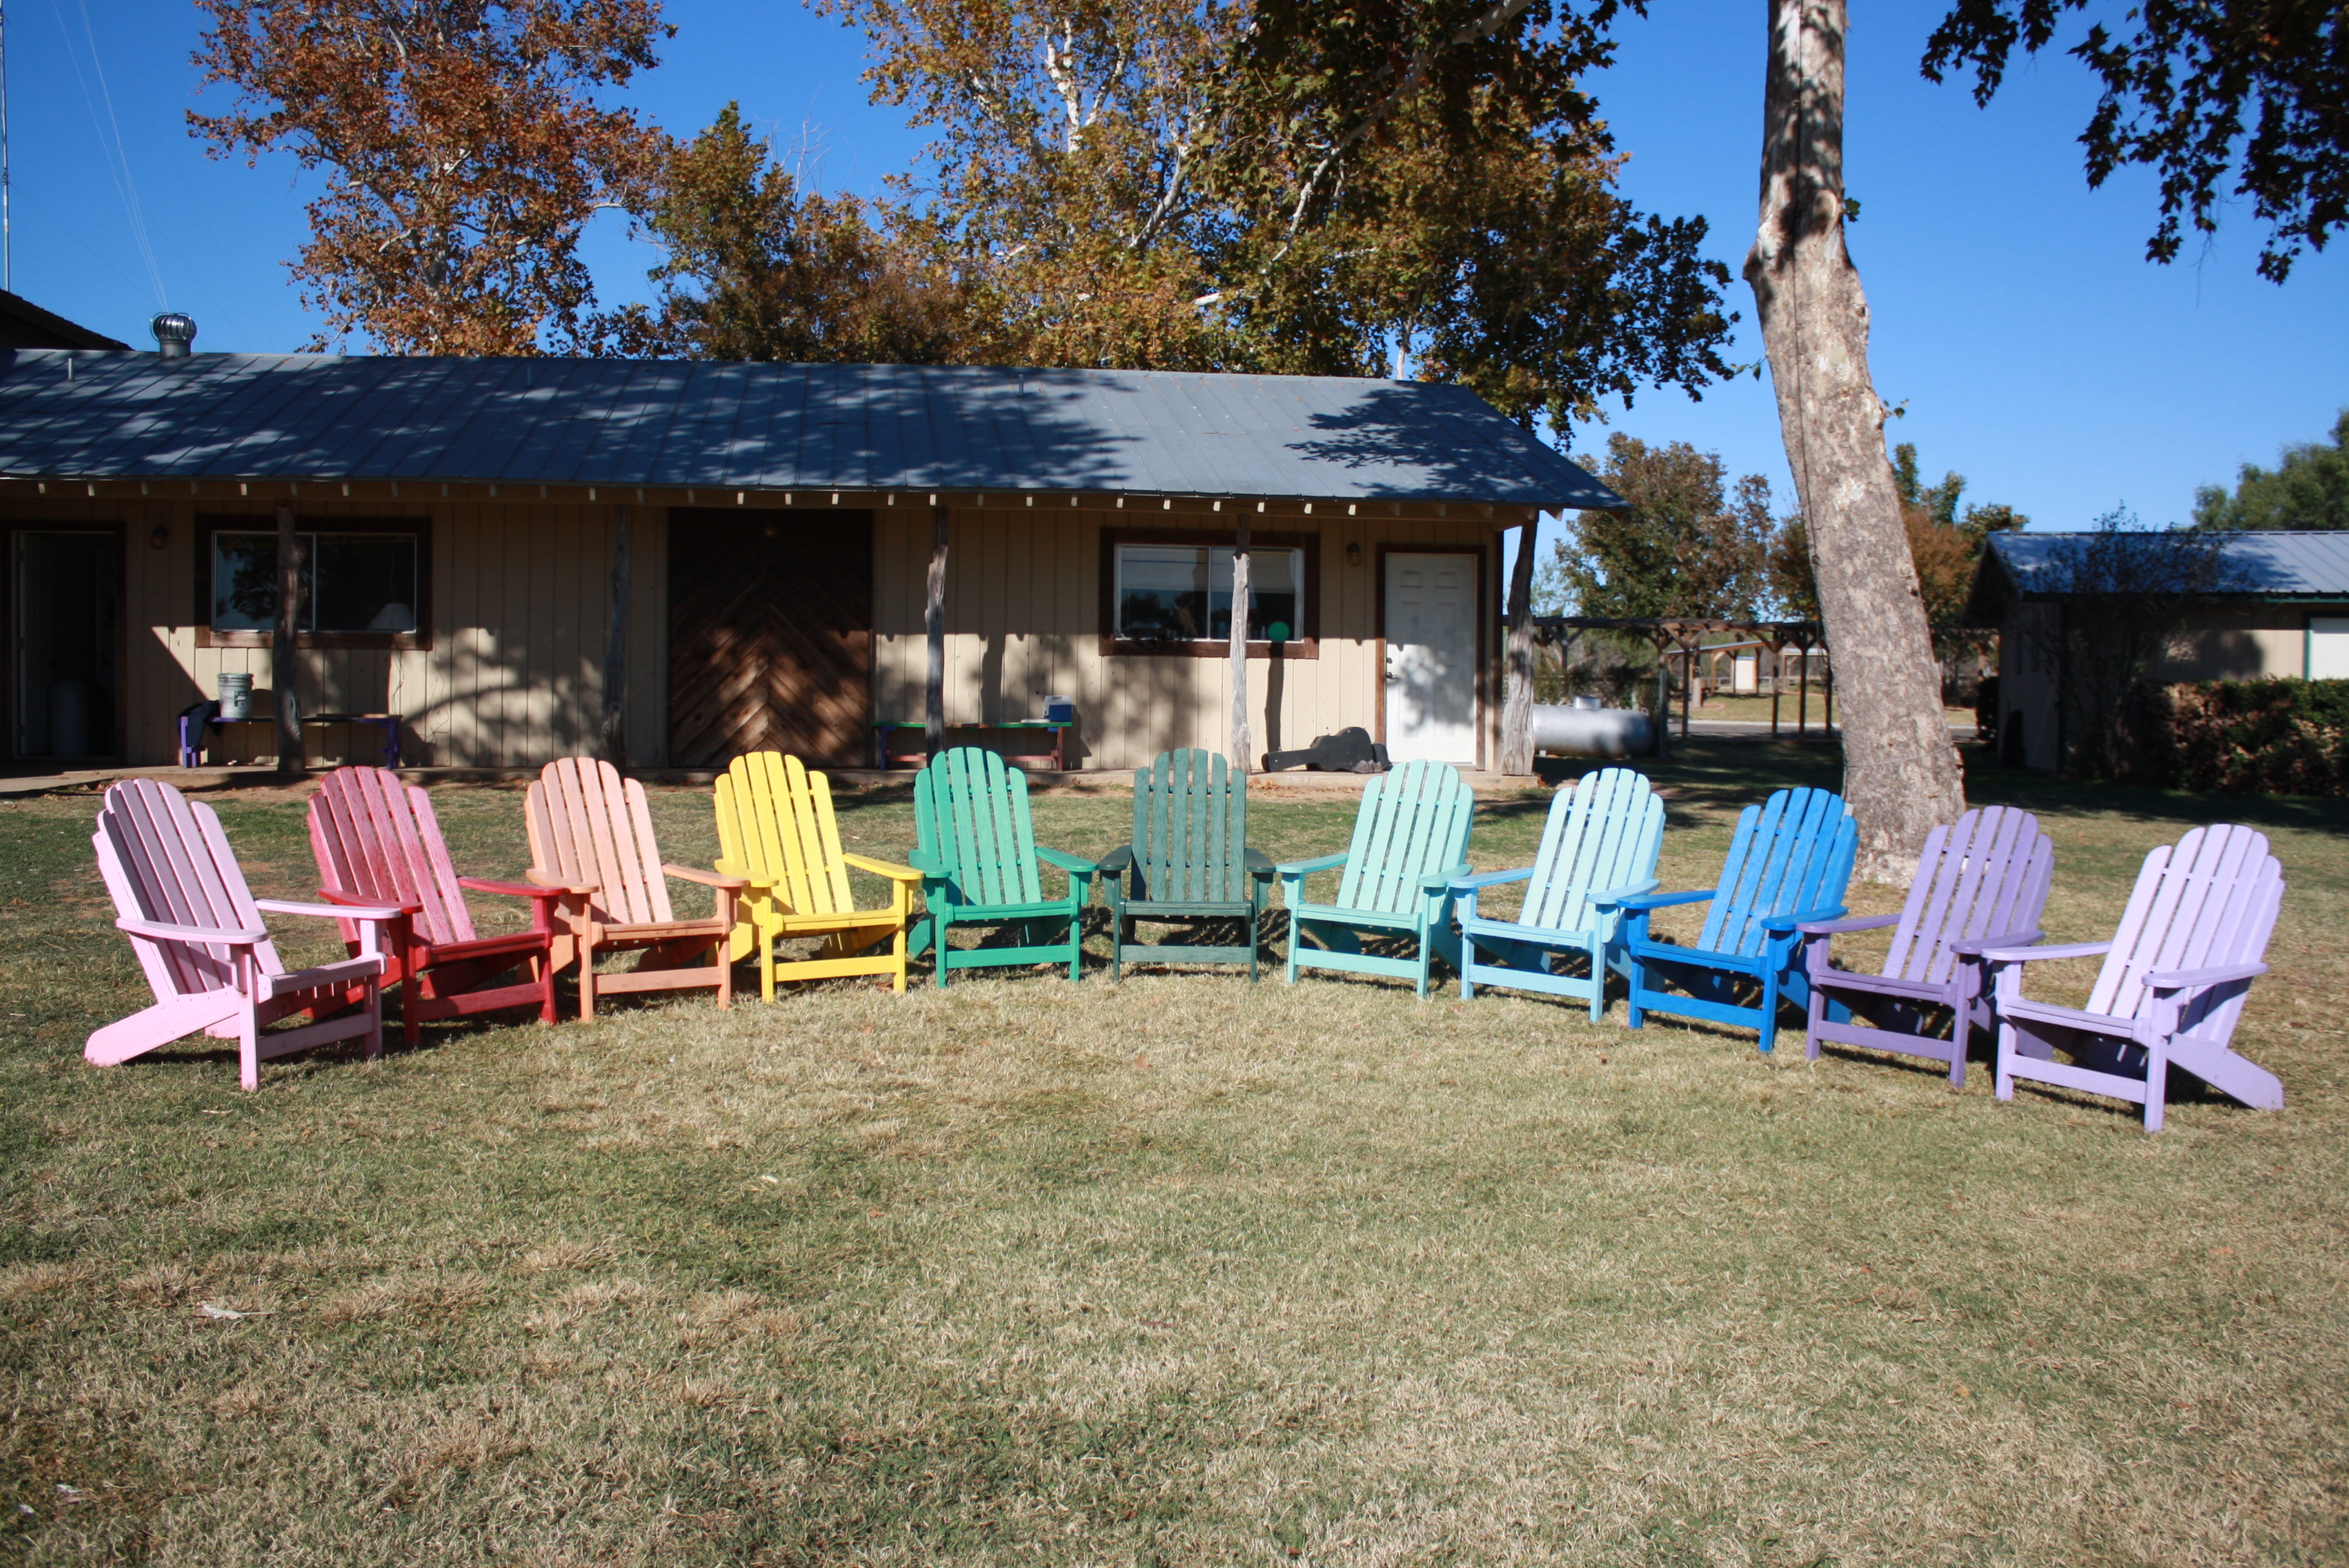 rainbow_chairs_color_2.jpg